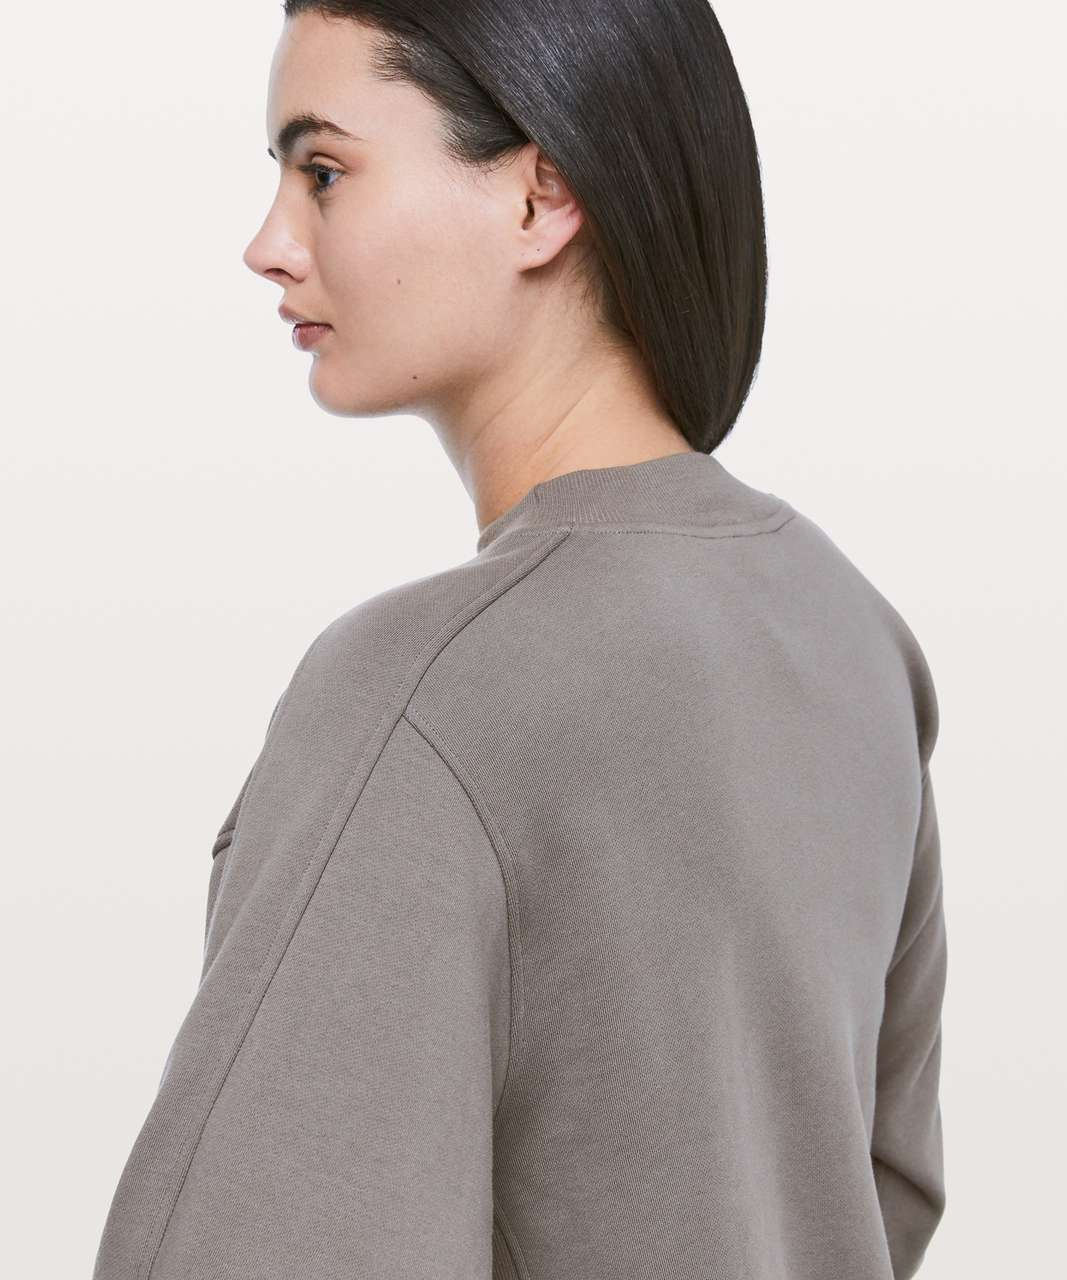 Lululemon Chill On Pullover - Carbon Dust